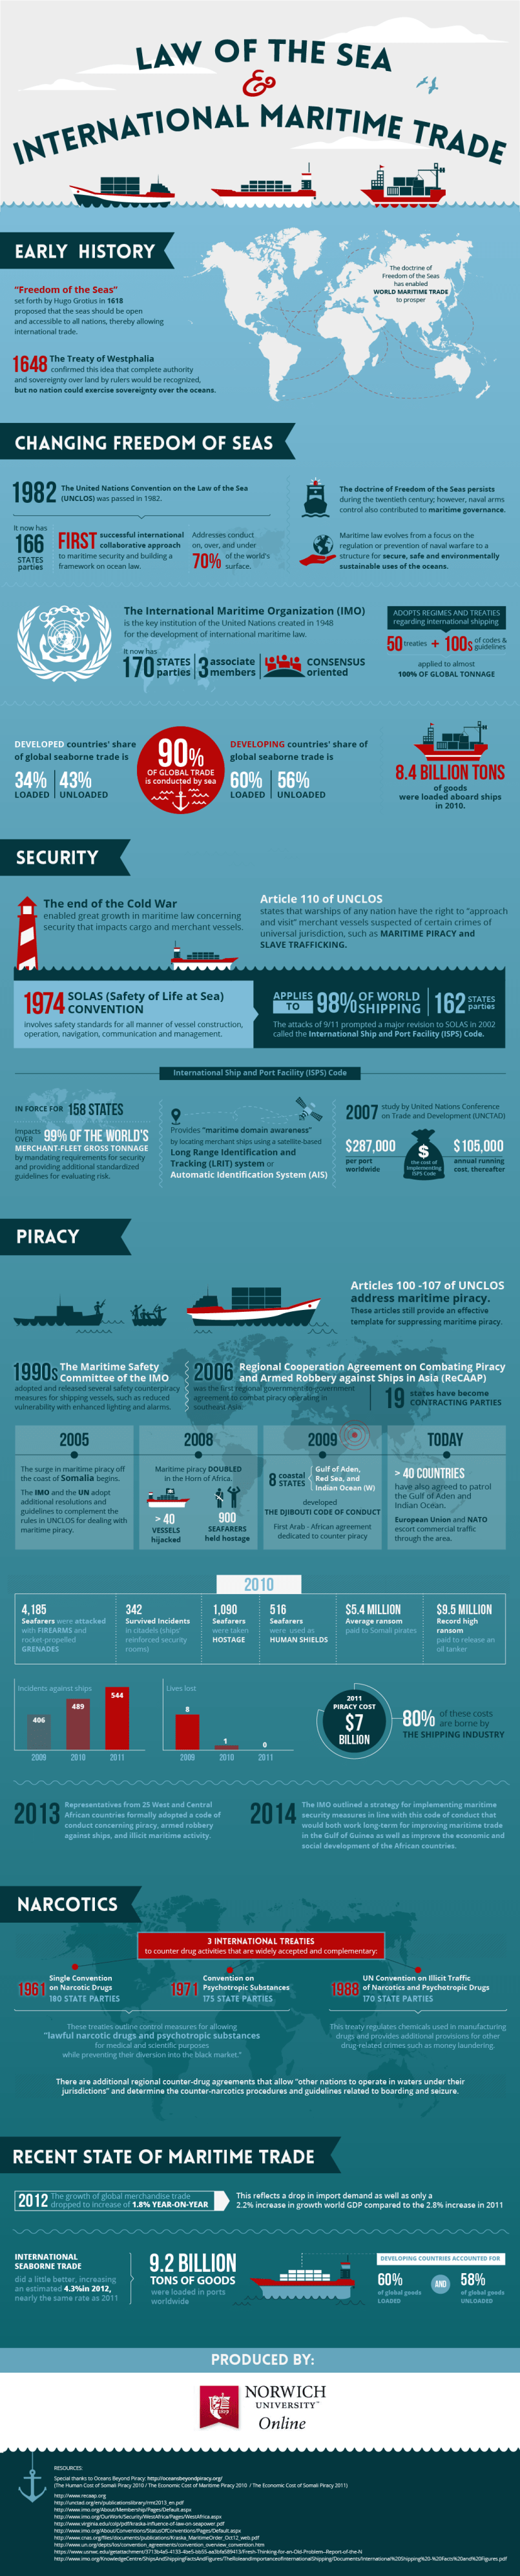 Infographic about Maritime Law